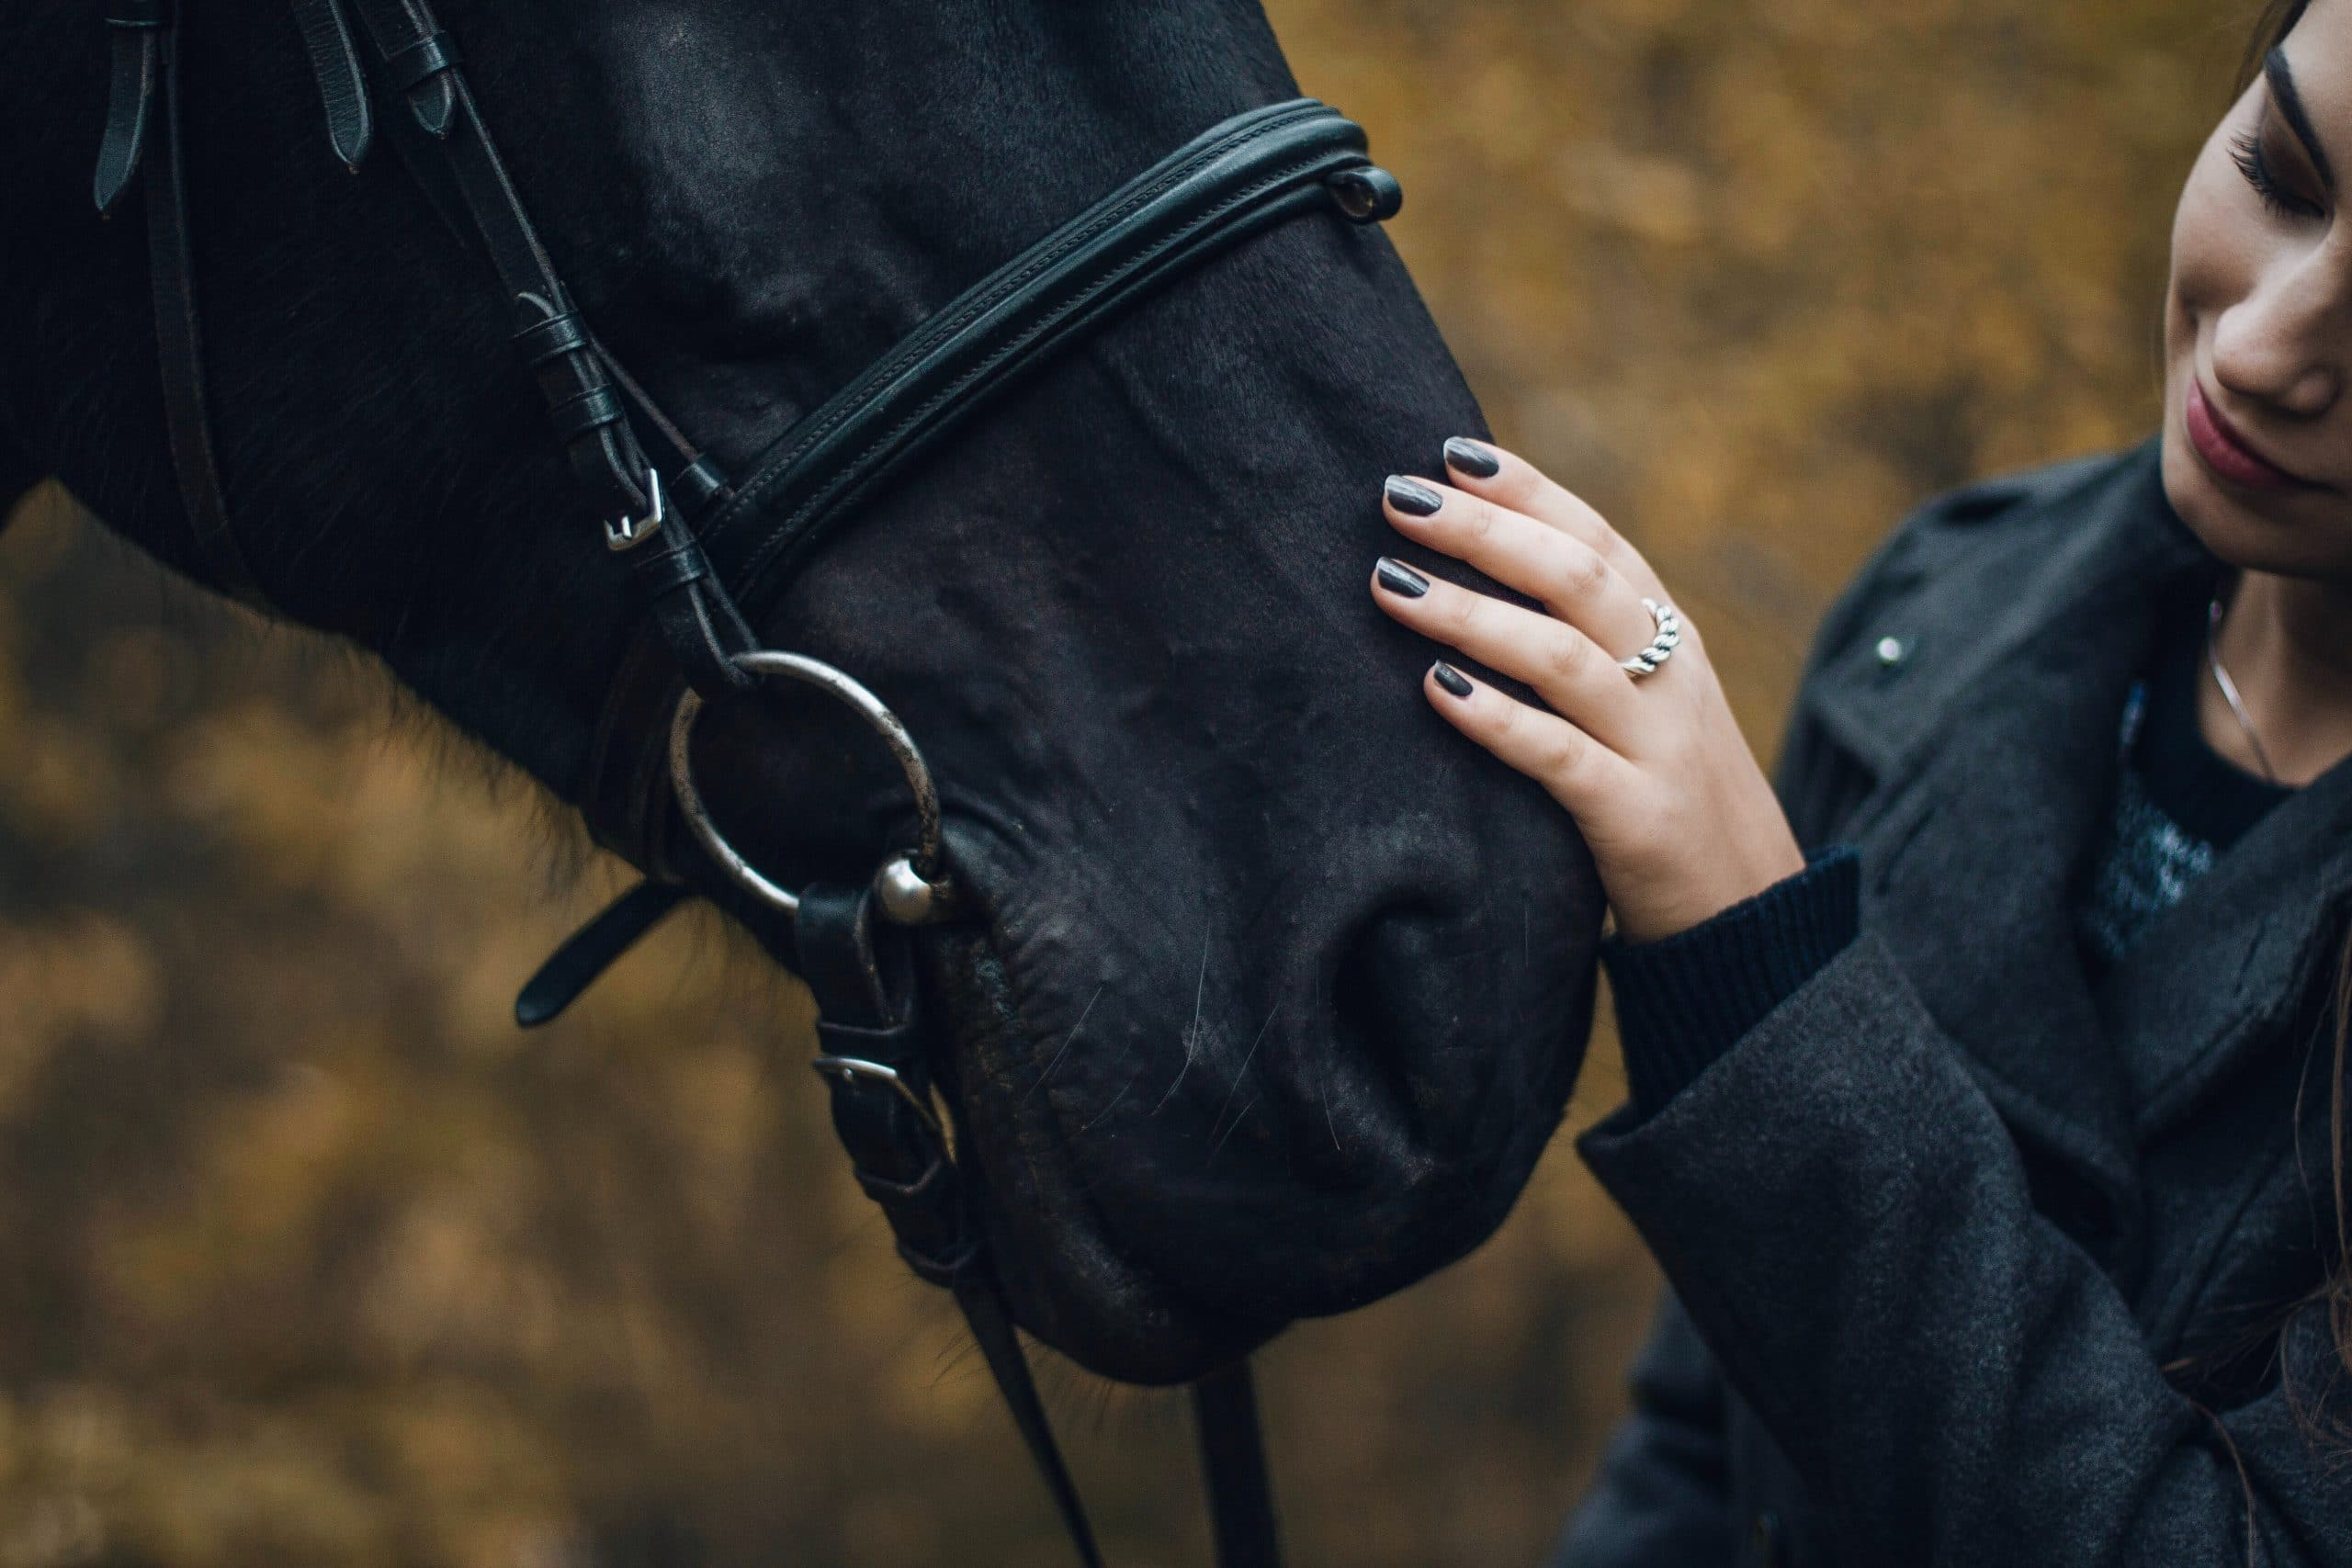 Affordable equestrian gear Photo by Ieva Vizule on Unsplash